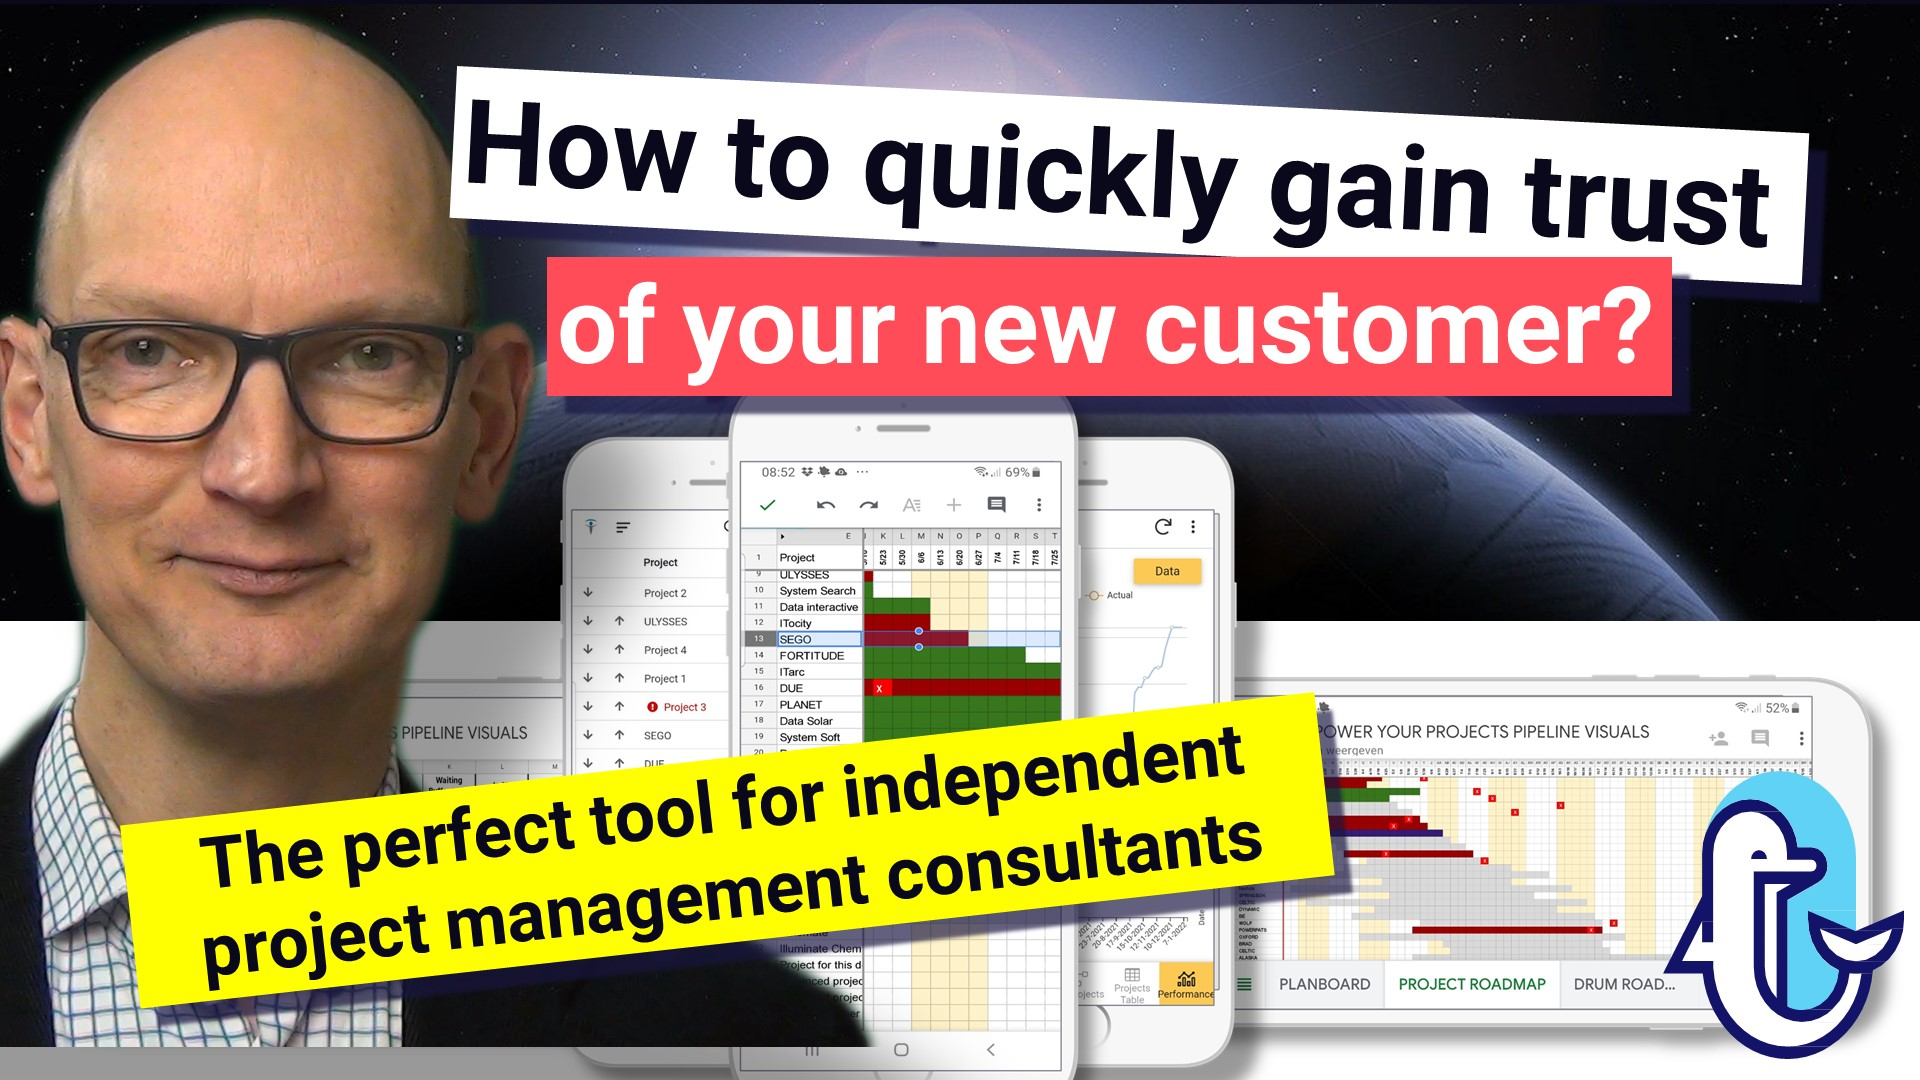 How to quickly gain the trust of your new customer?